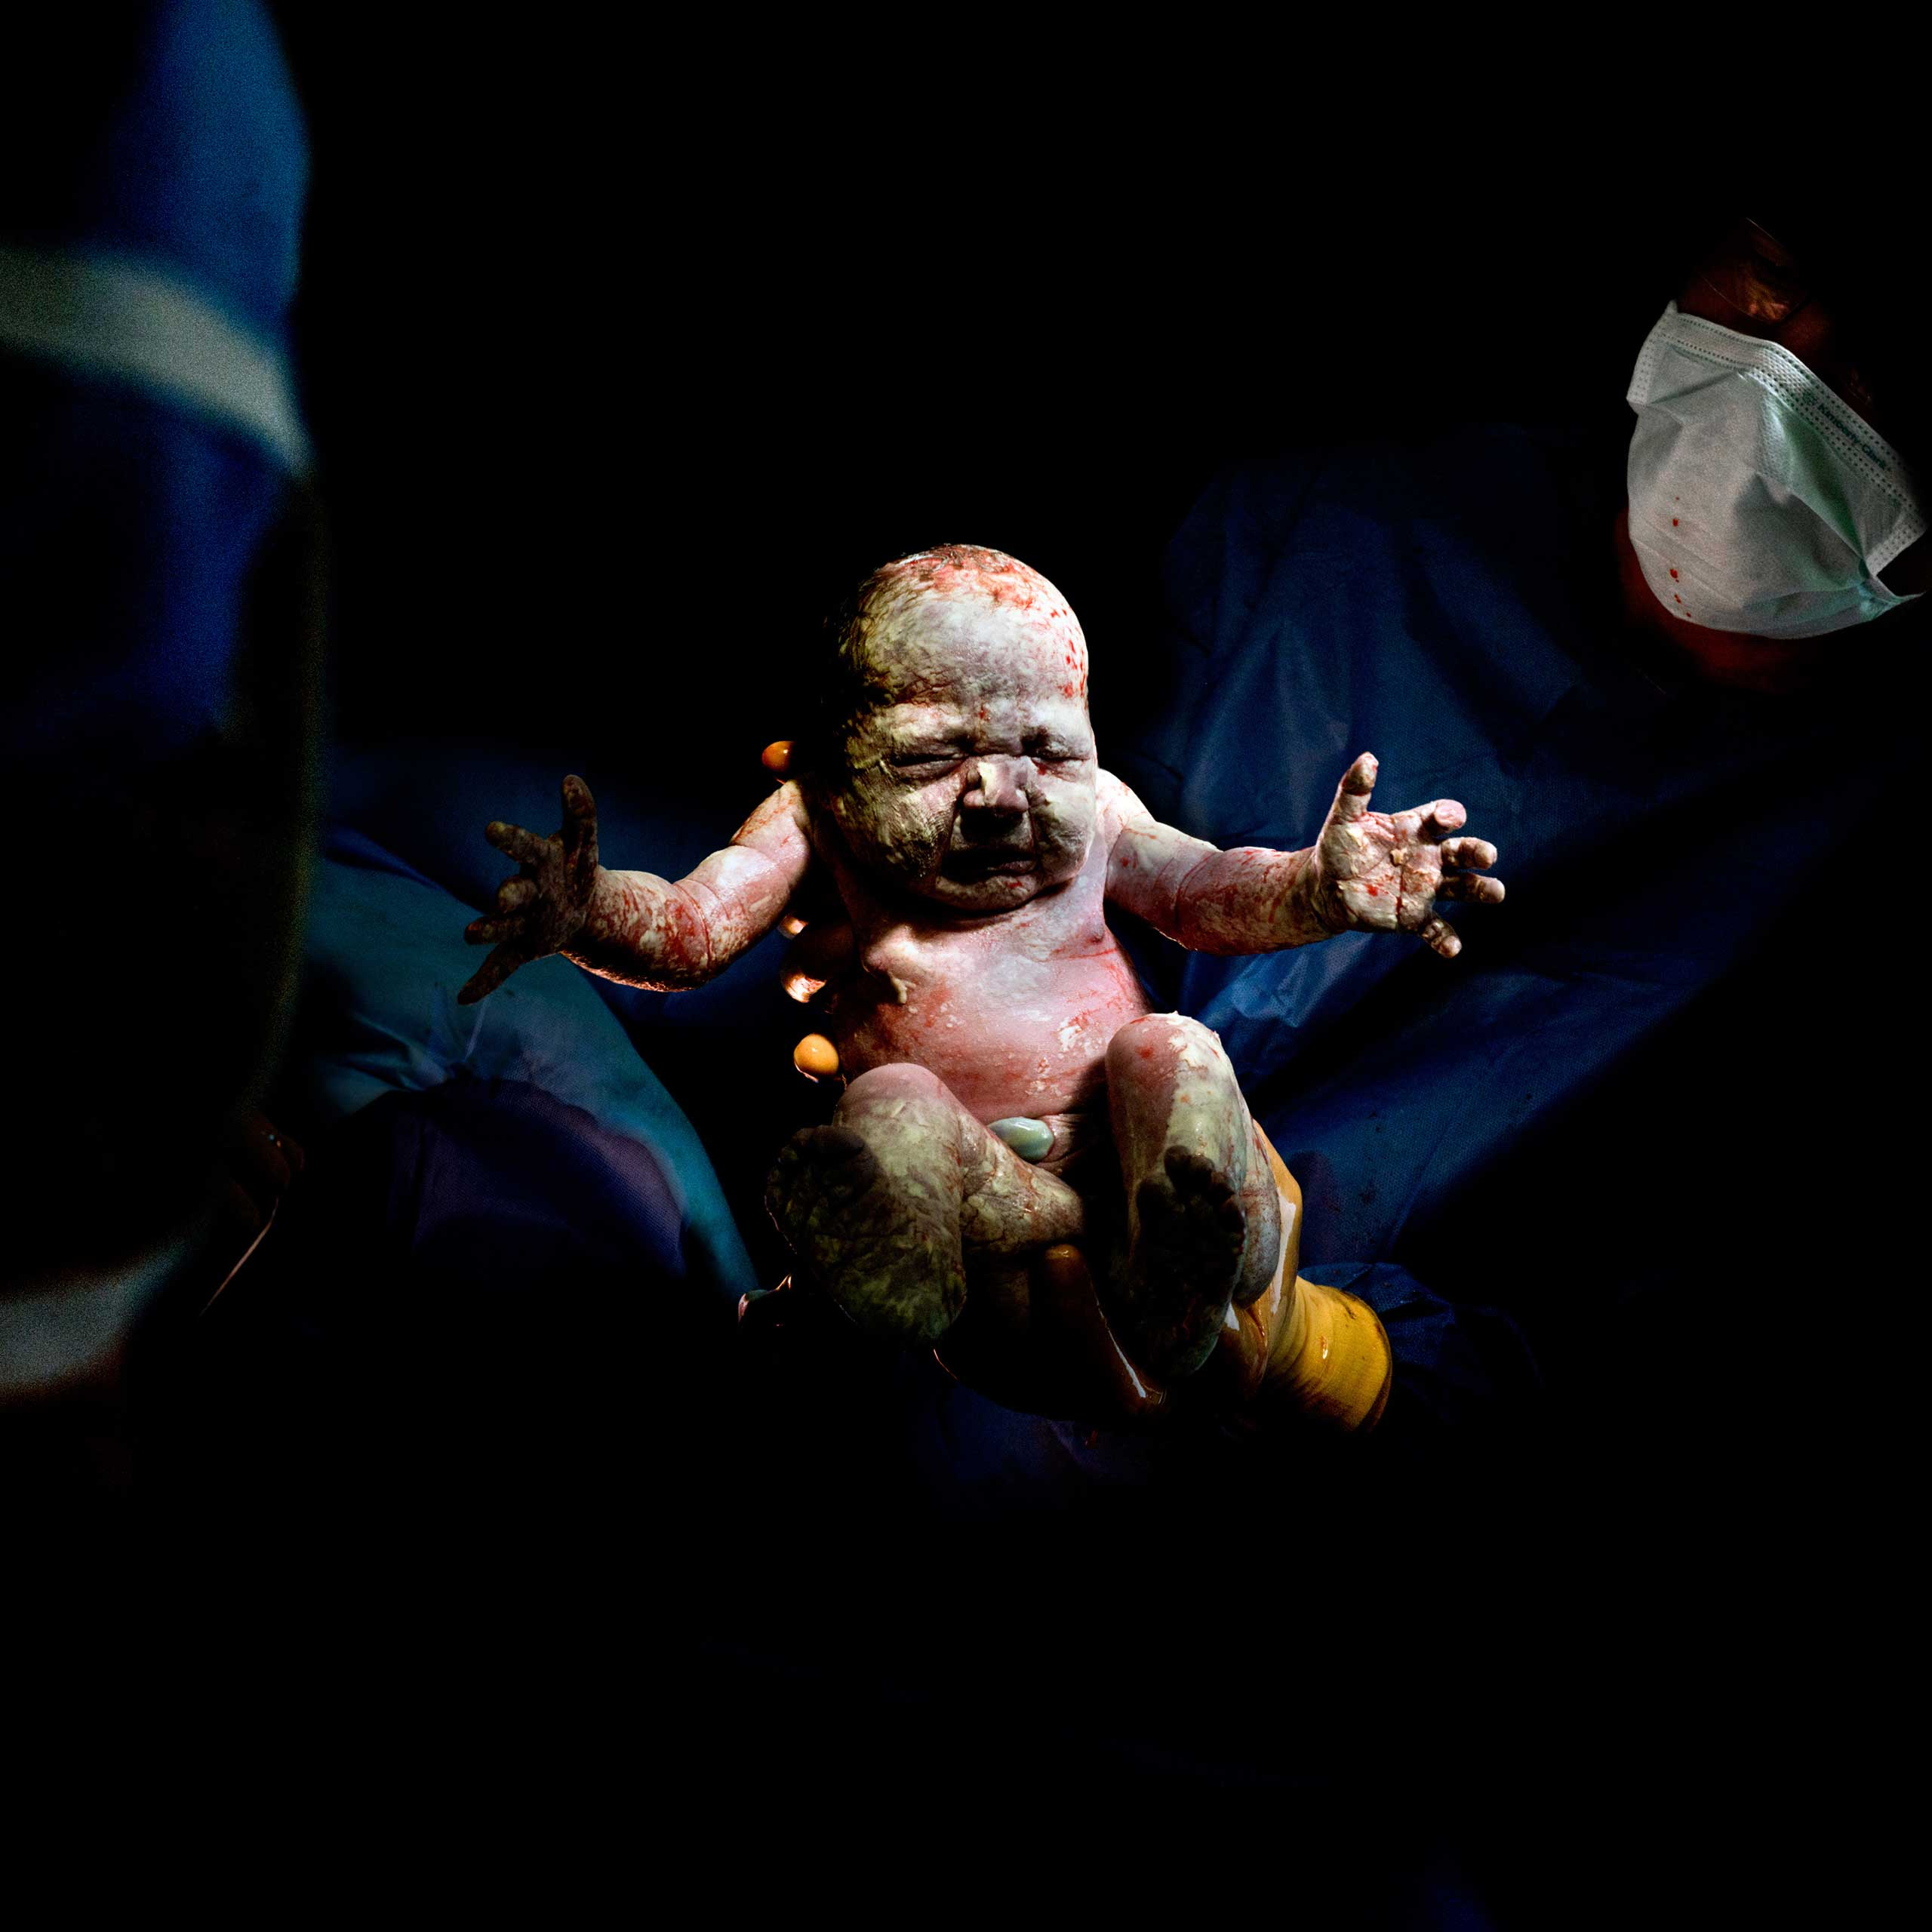 Nominated in the Portraiture category. Christian Berthelot's work on children born by c-section.